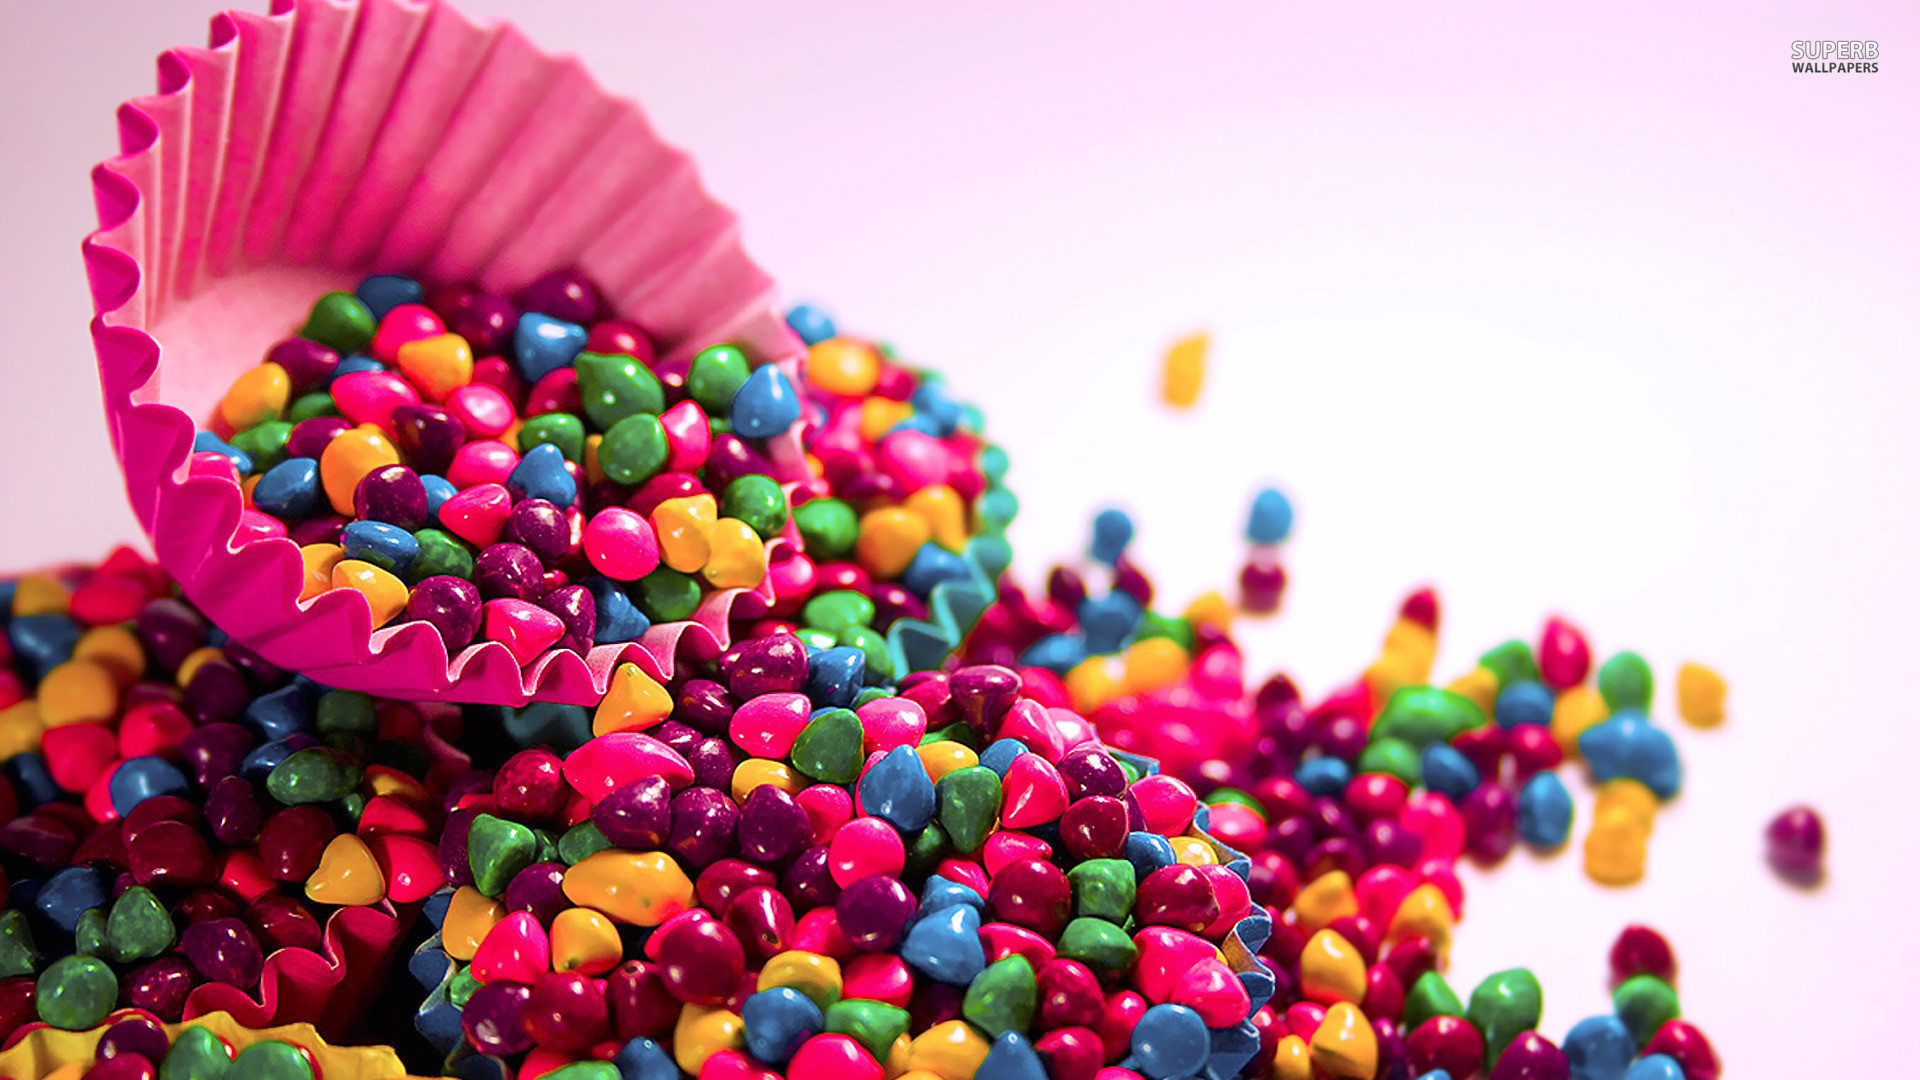 Mm Candy Wallpaper 56 images 1920x1080